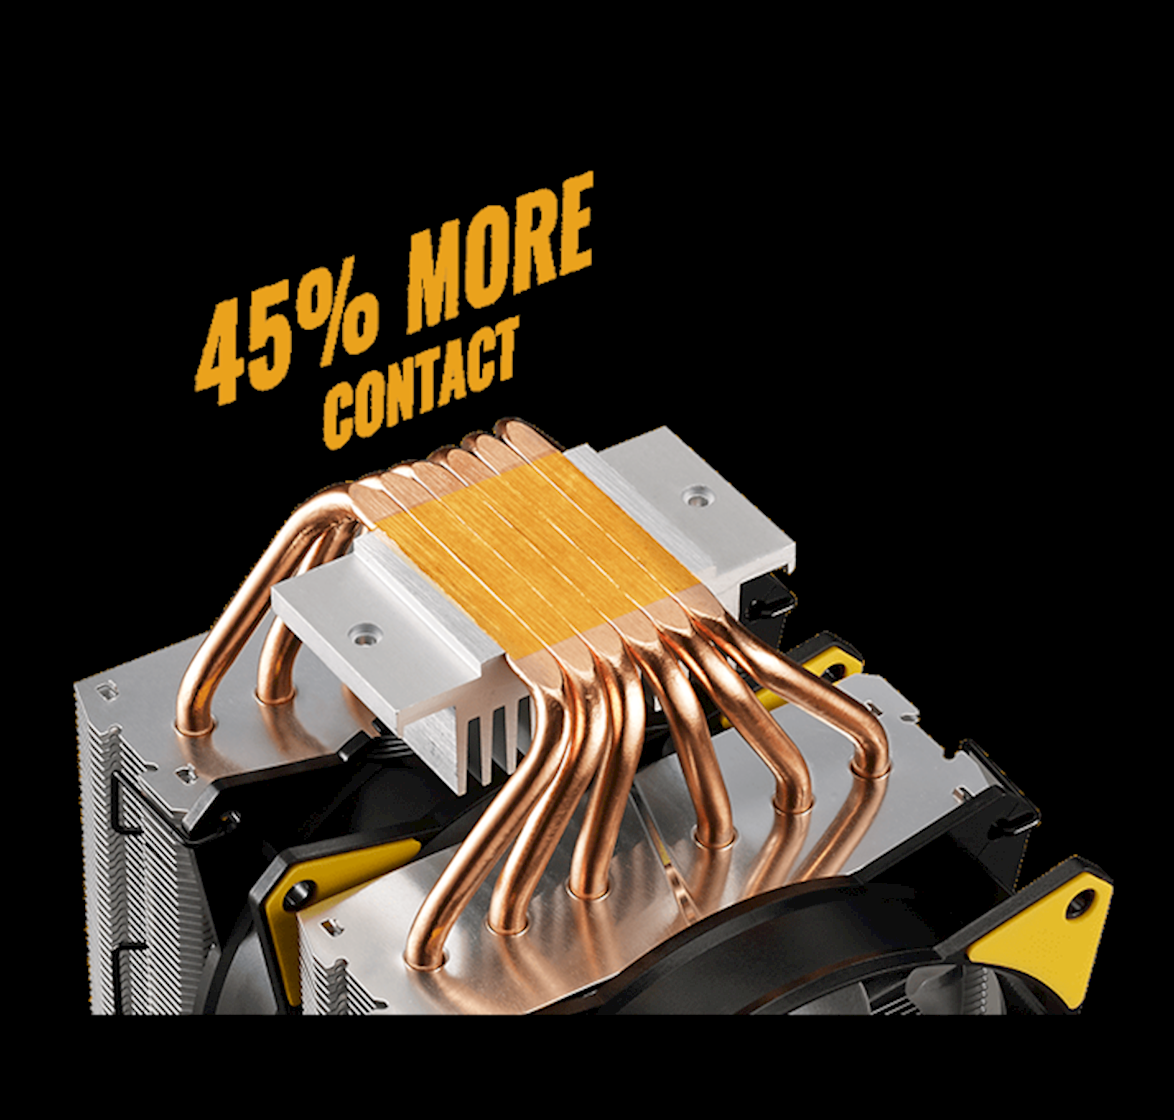 45% More Contact With CDC 2.0